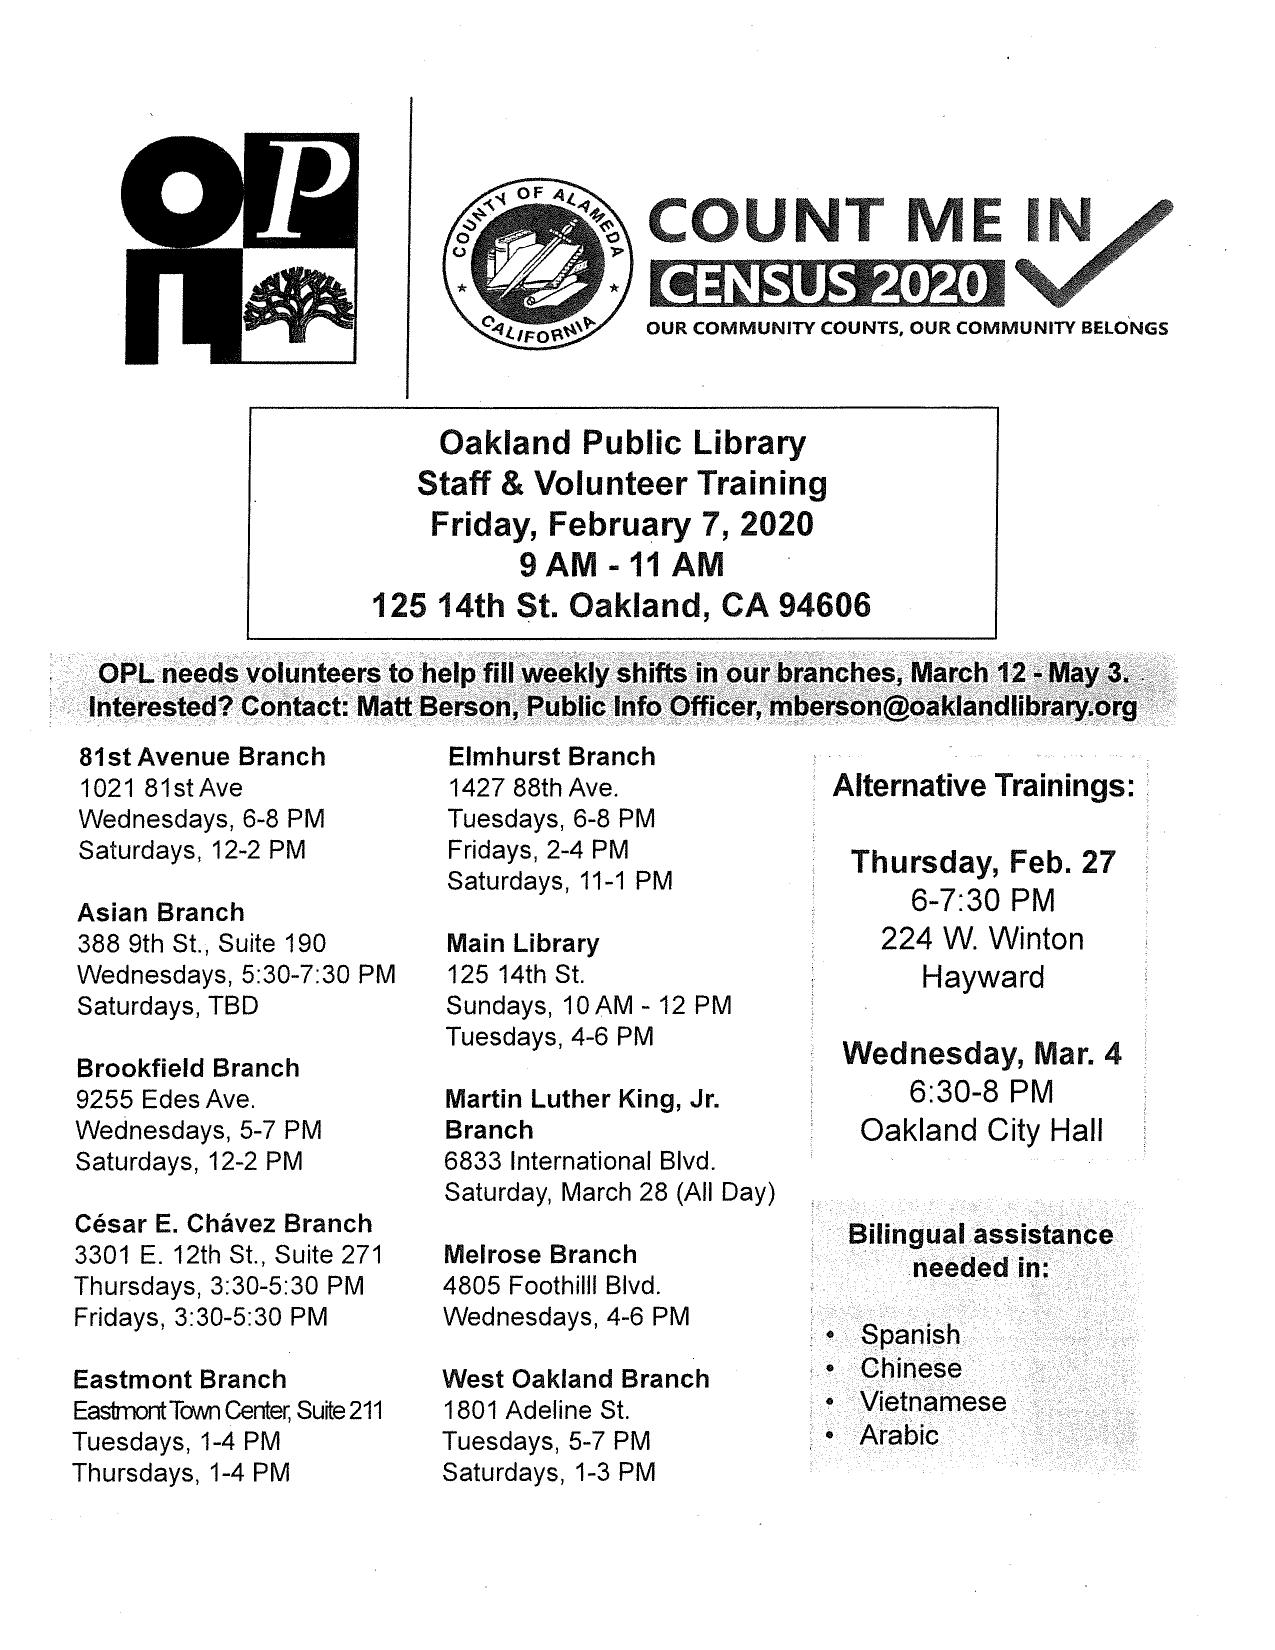 Census Training Dates